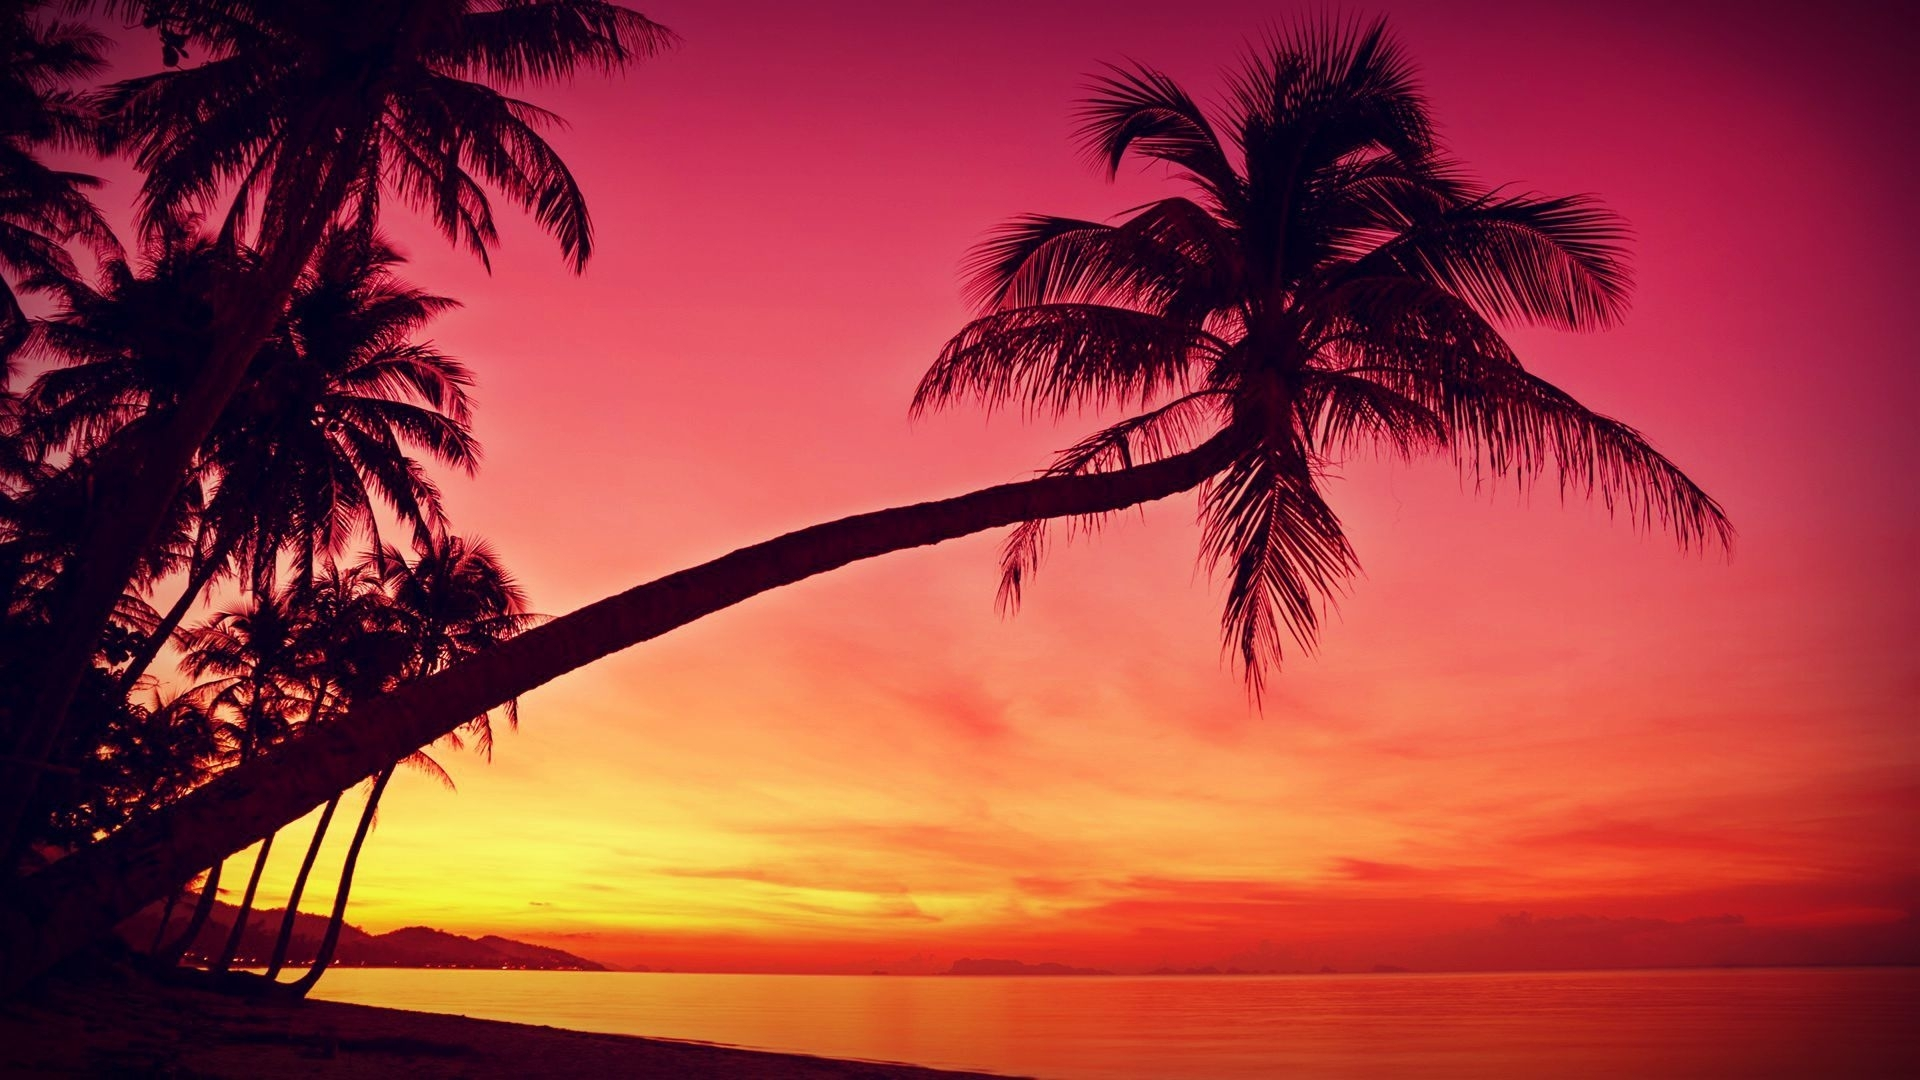 hd tropical, sunset, palm trees, silhouette, beach wallpapers - hd